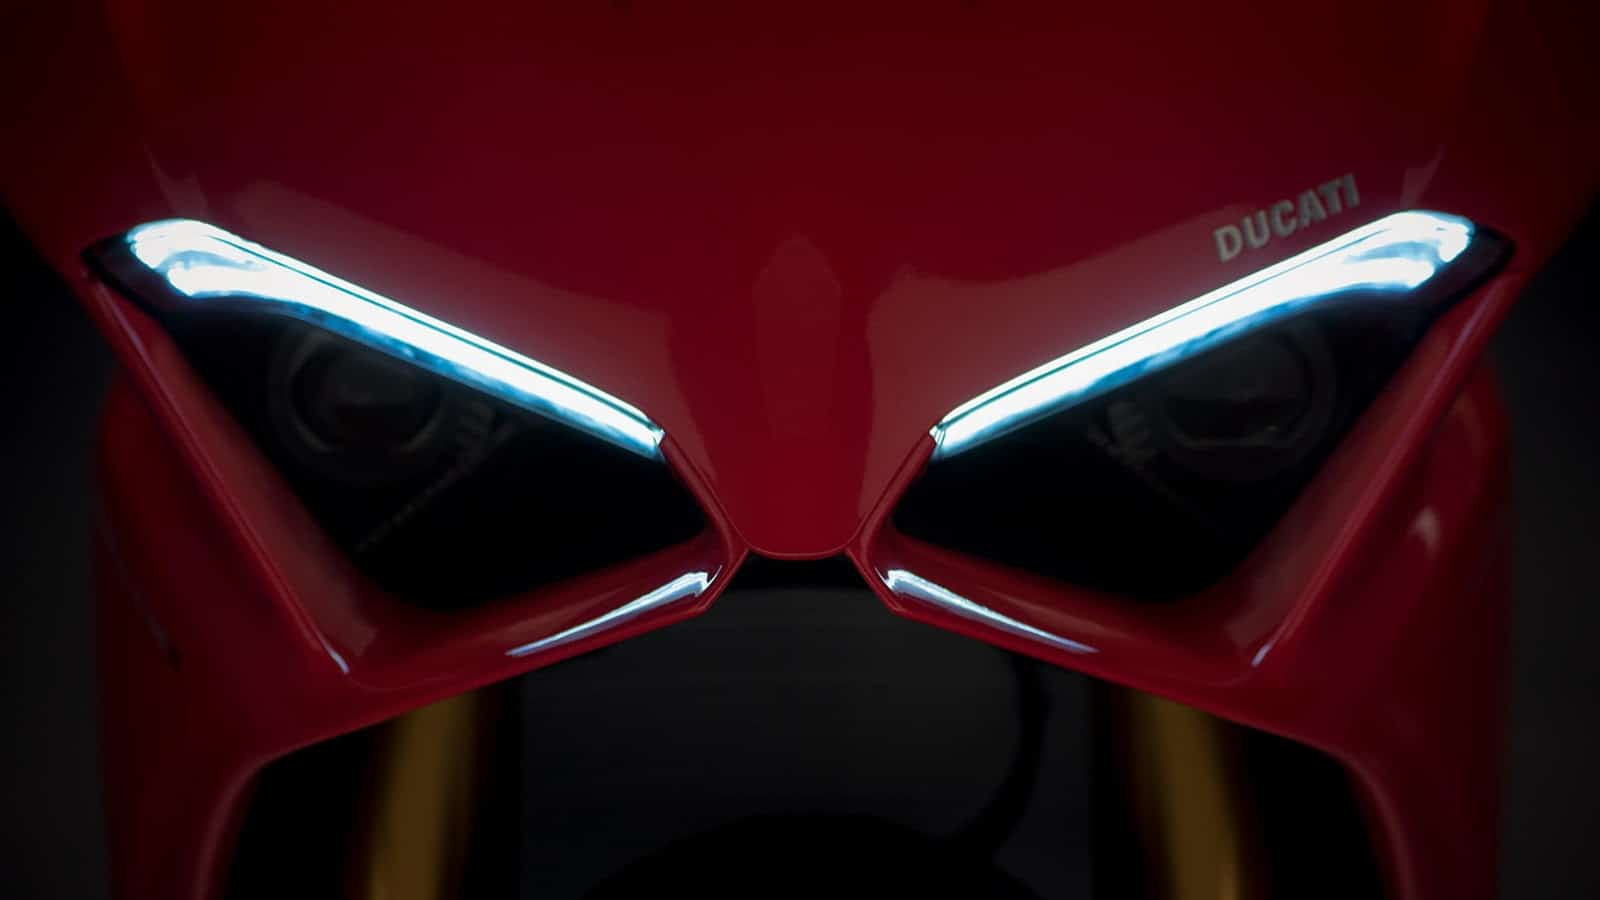 Ducati Panigale 1299 >> The Fiery Red Ducati Panigale V4 Joins In On The Fun